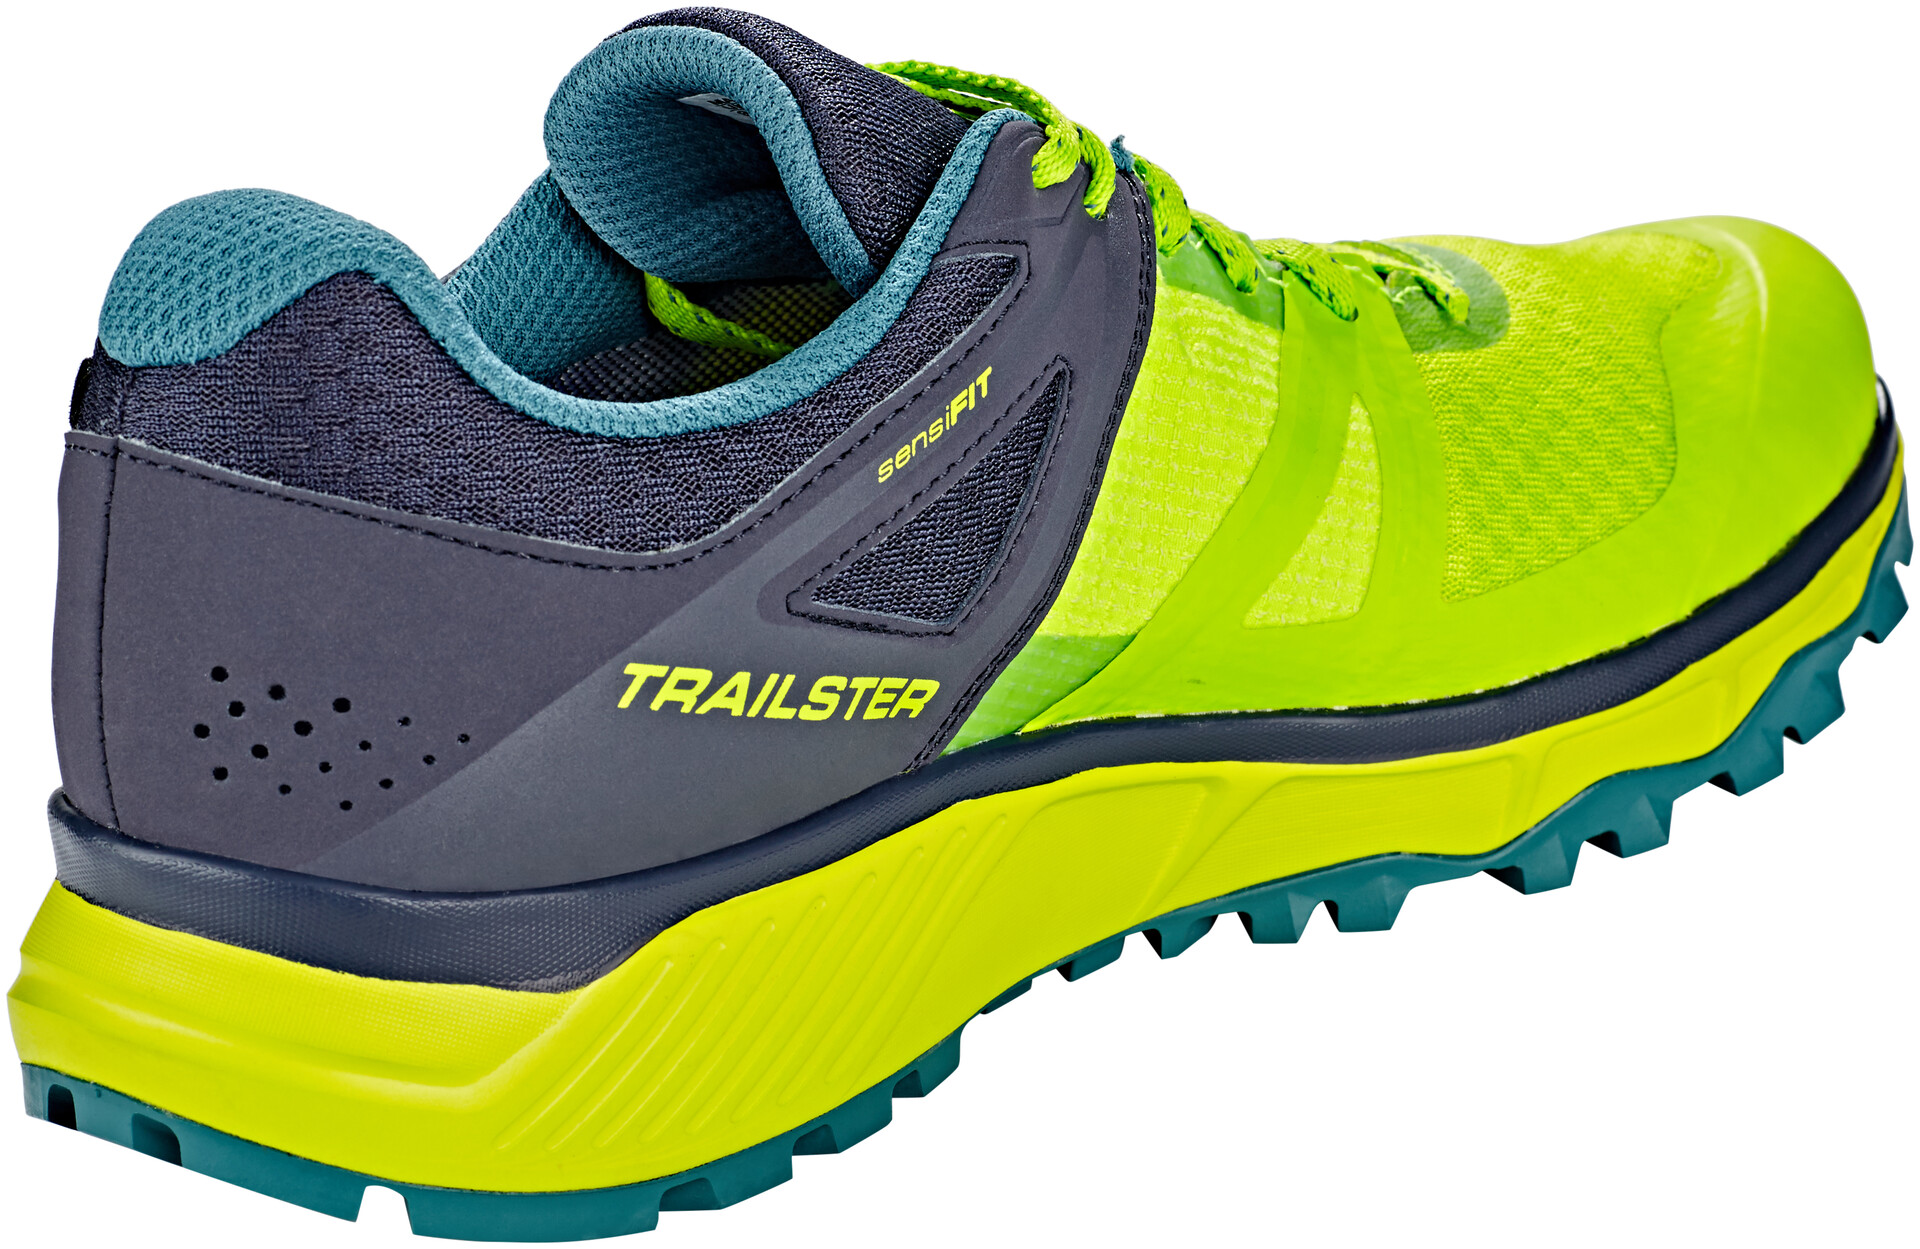 TRAILSTER GTX ACID LIME SALOMON | Entra